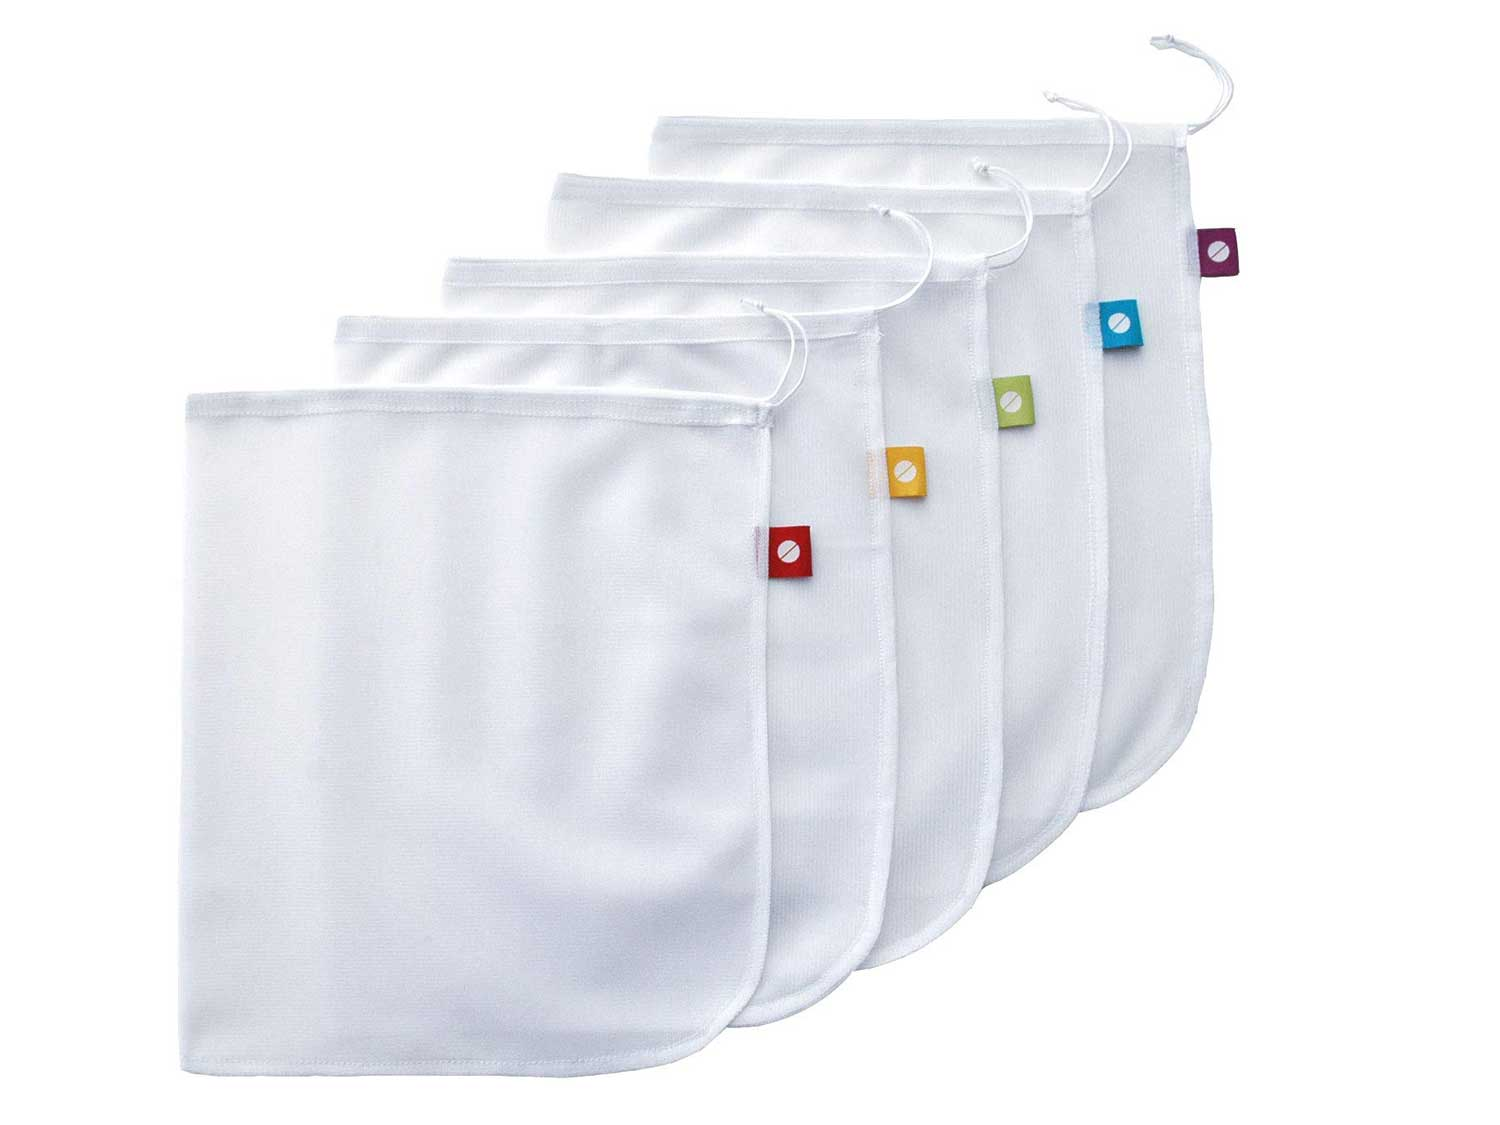 Flip and Tumble produce bags.